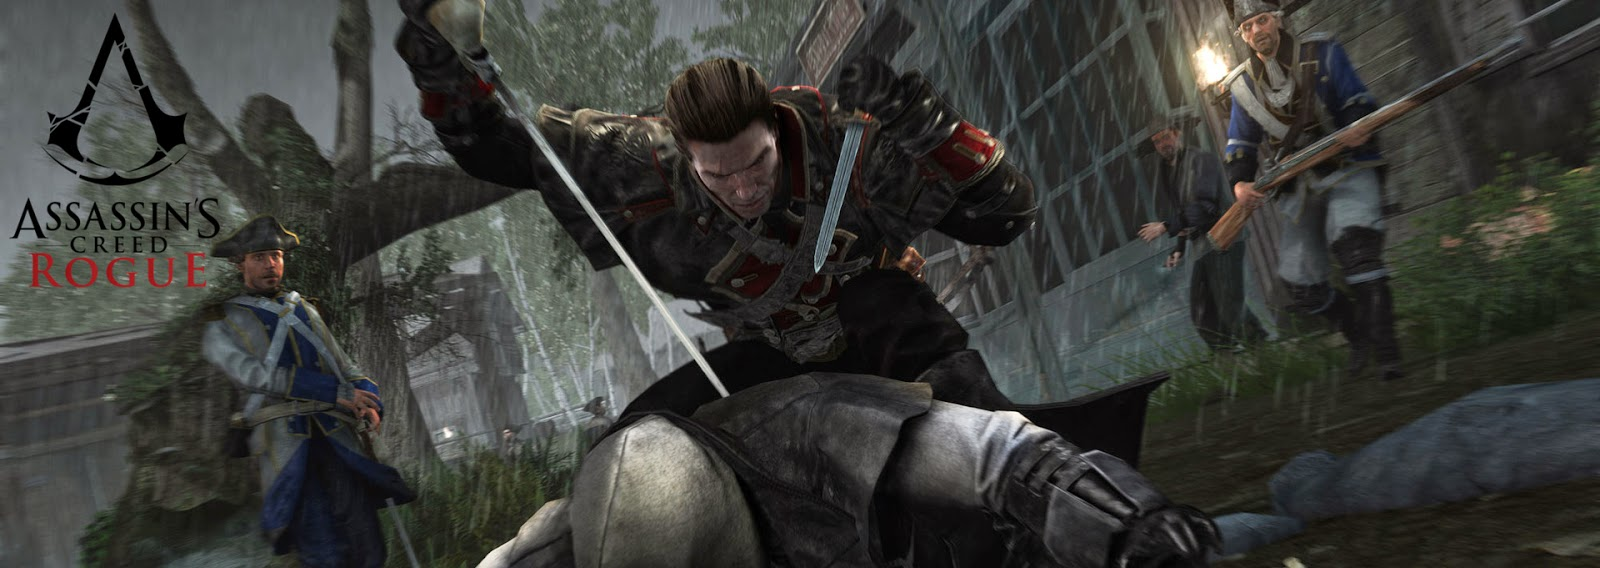 Assassin's Creed Rogue: First Look